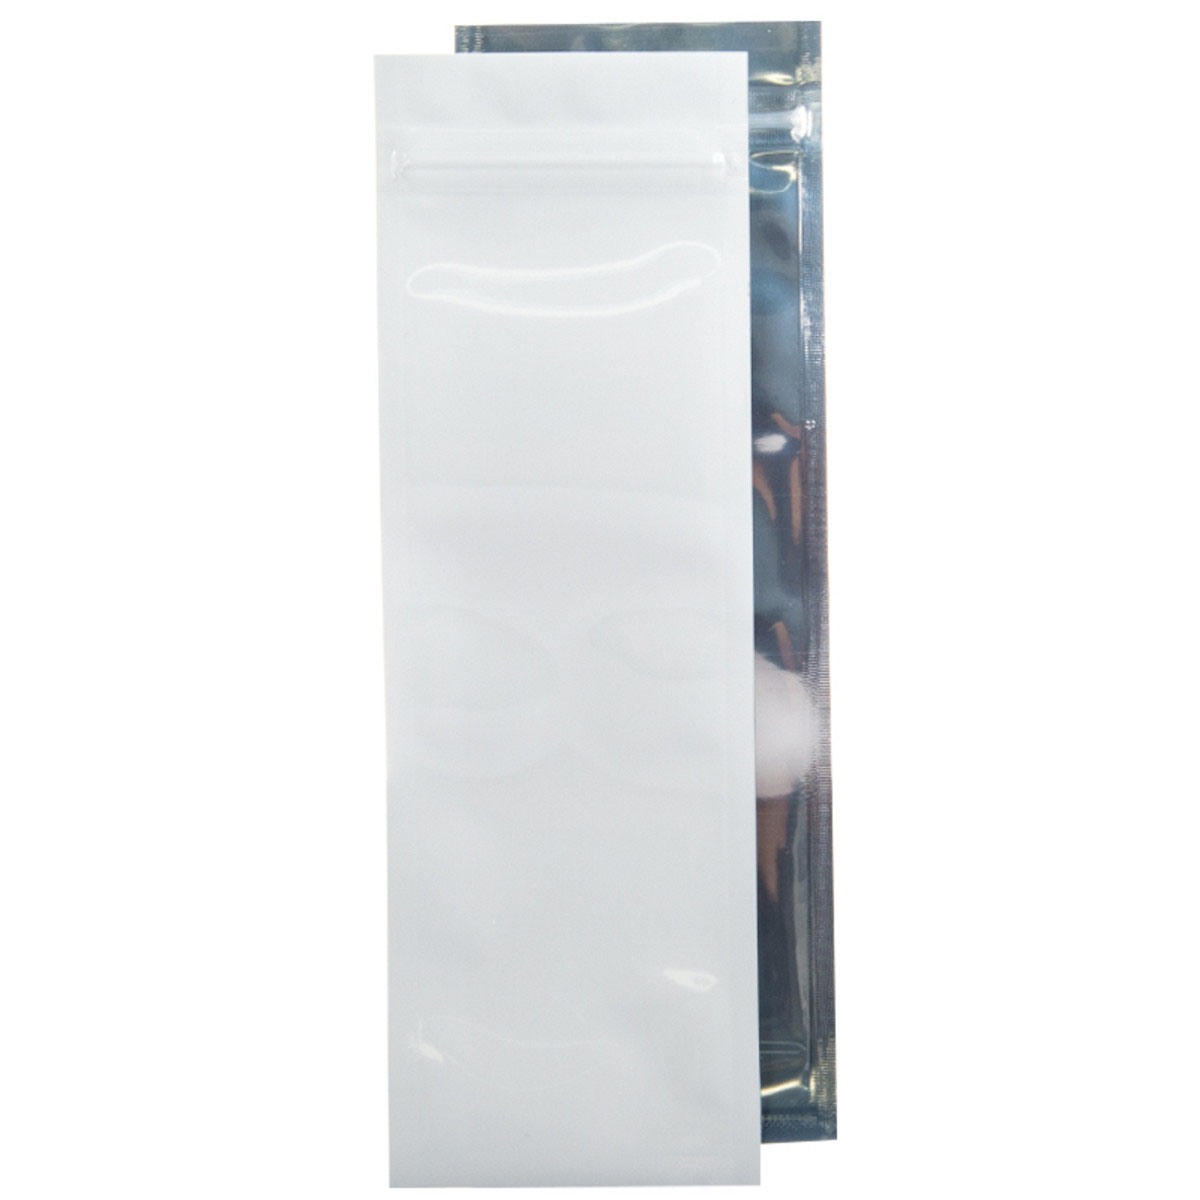 Syringe White/Clear Barrier Bags (100 Qty.)